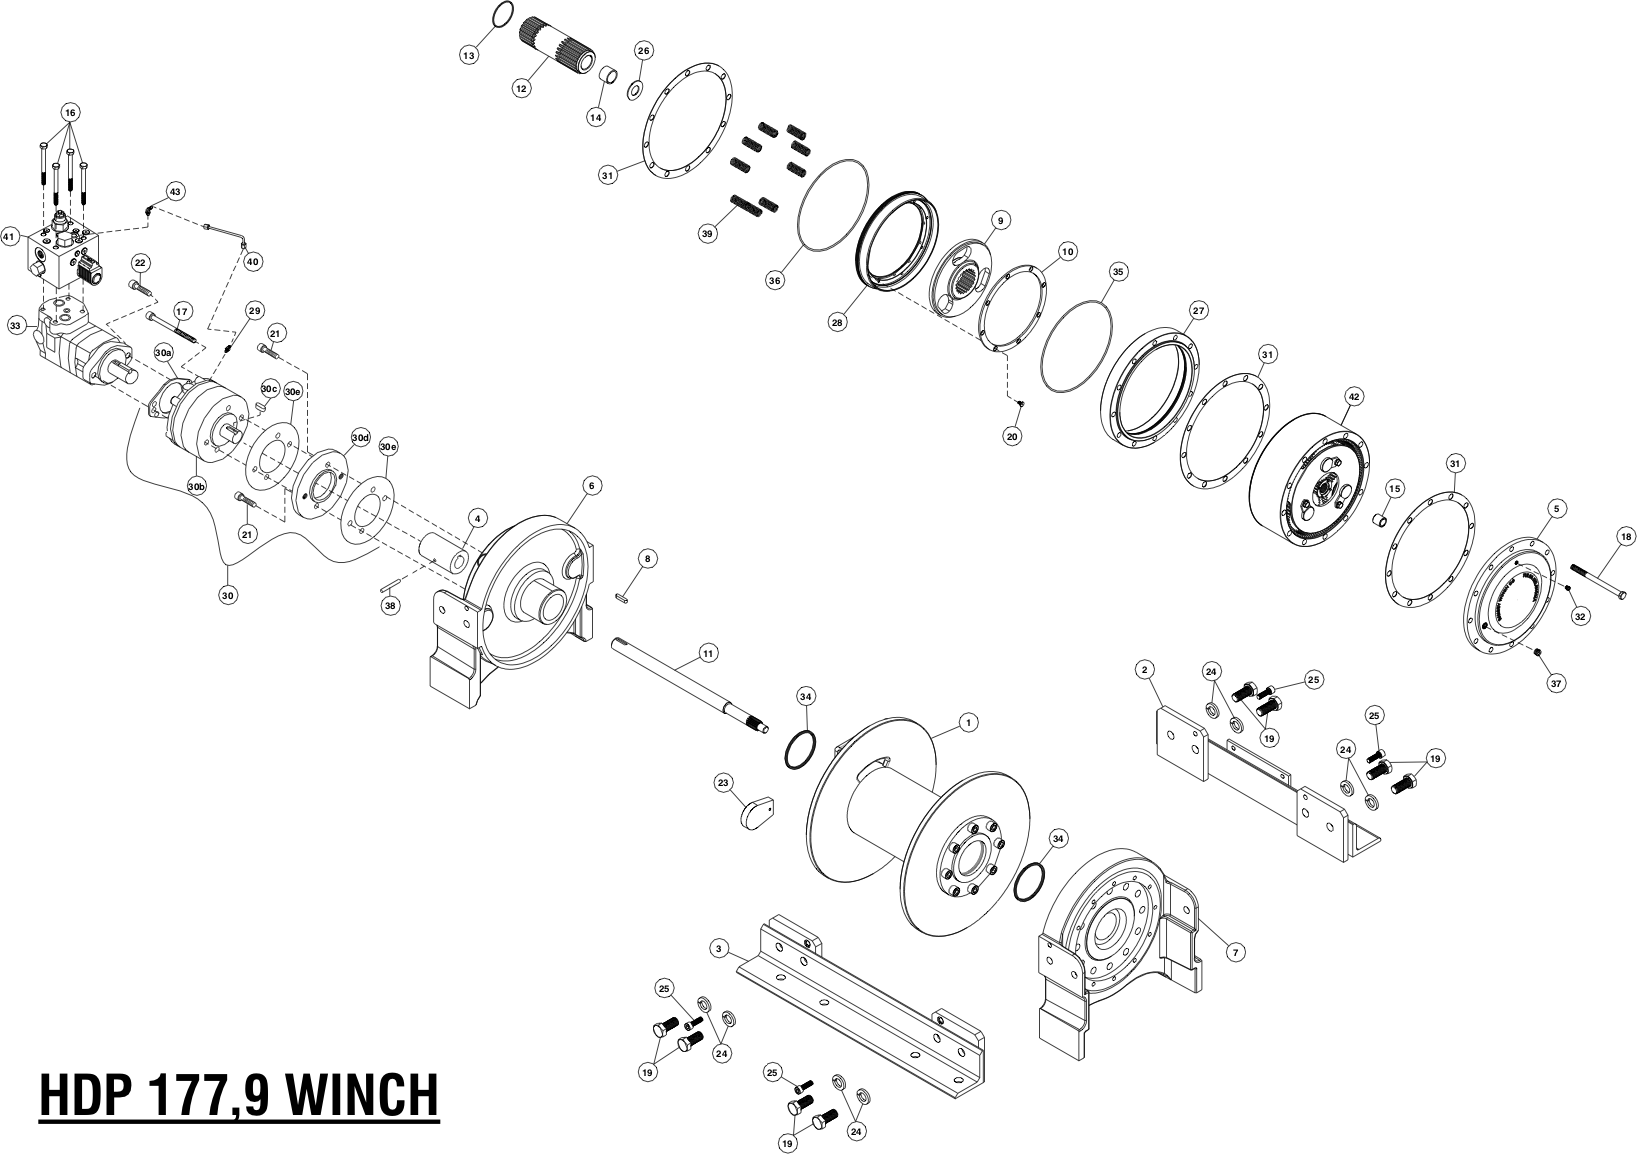 Ramsey Winch HDP-177,9 Parts Diagram